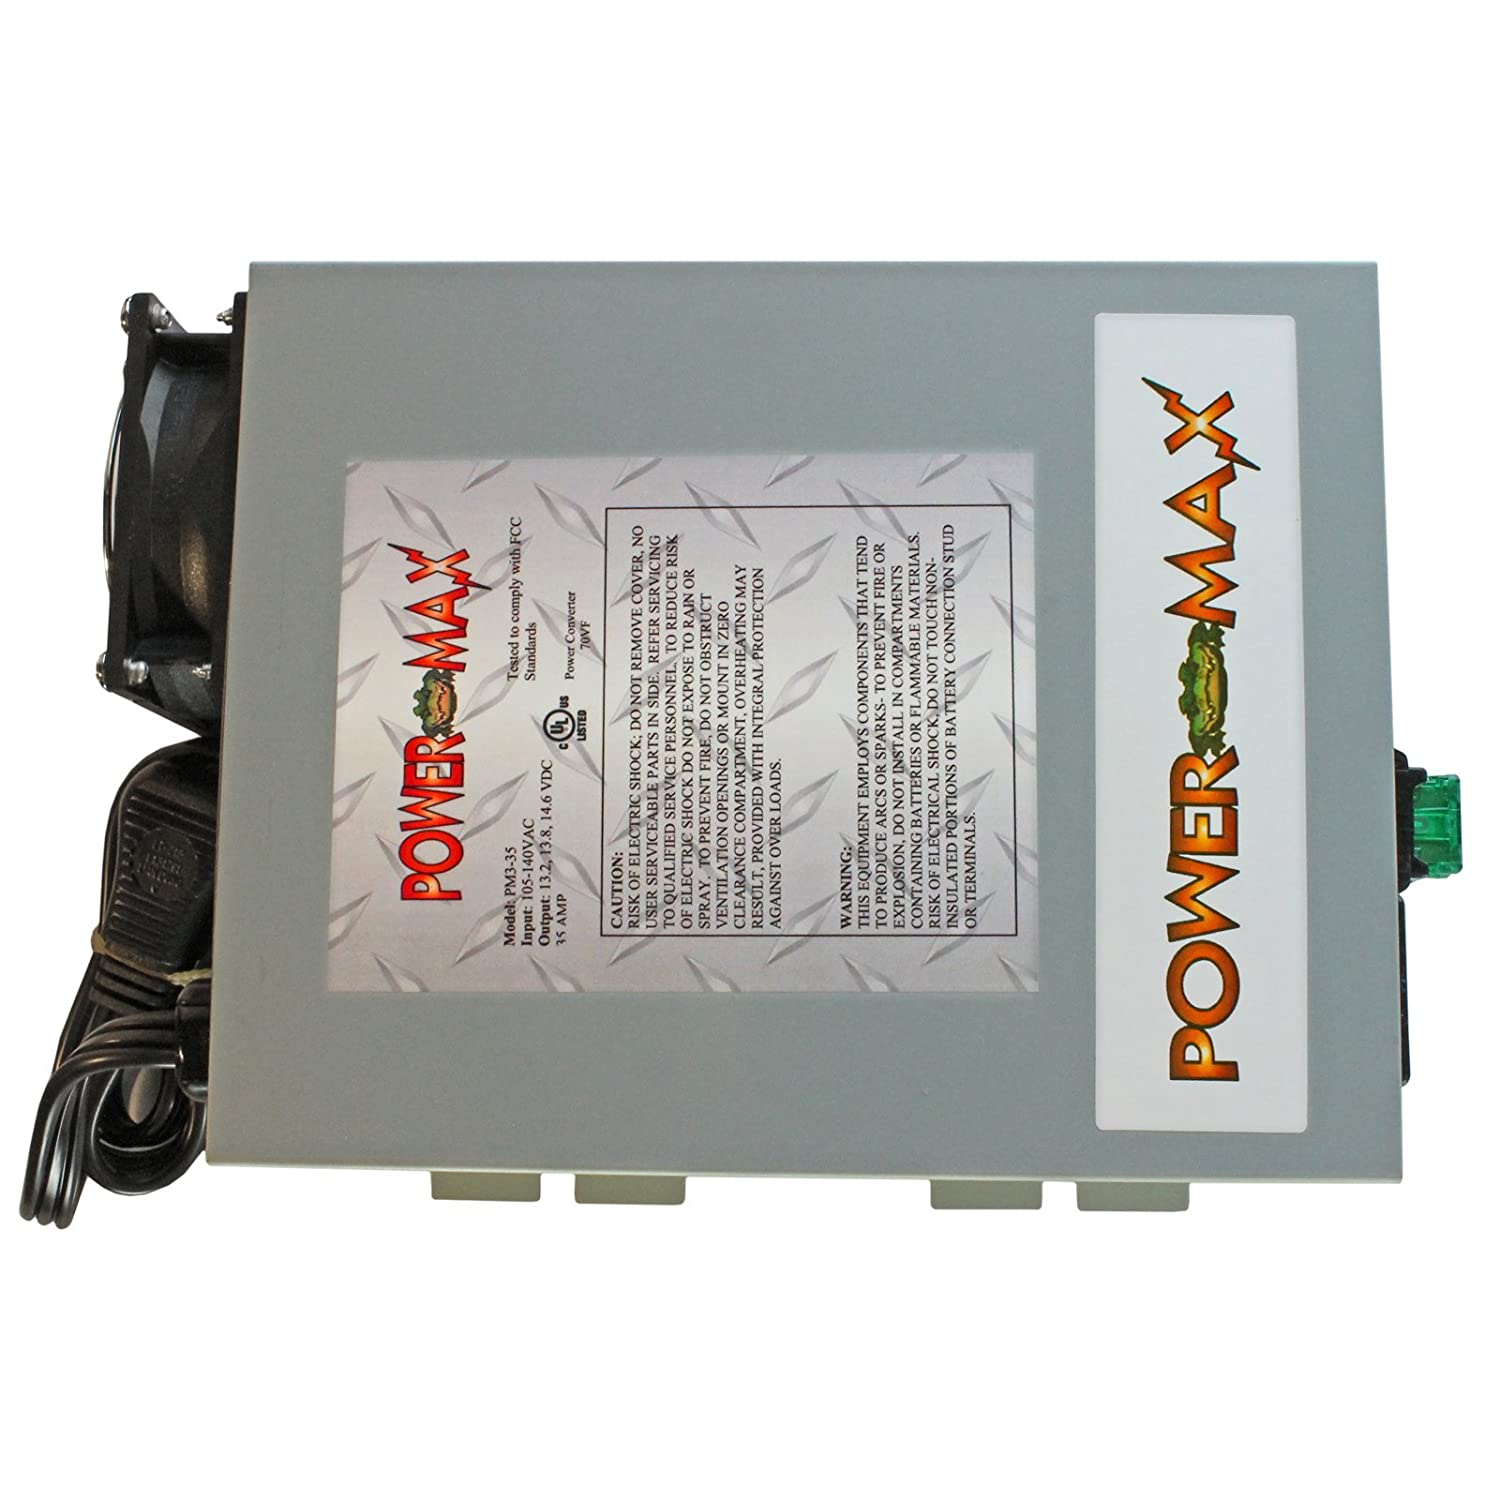 71q5PmOAG8L._SL1500_ amazon com powermax 110 volt ac to 12 volt dc power supply  at gsmx.co